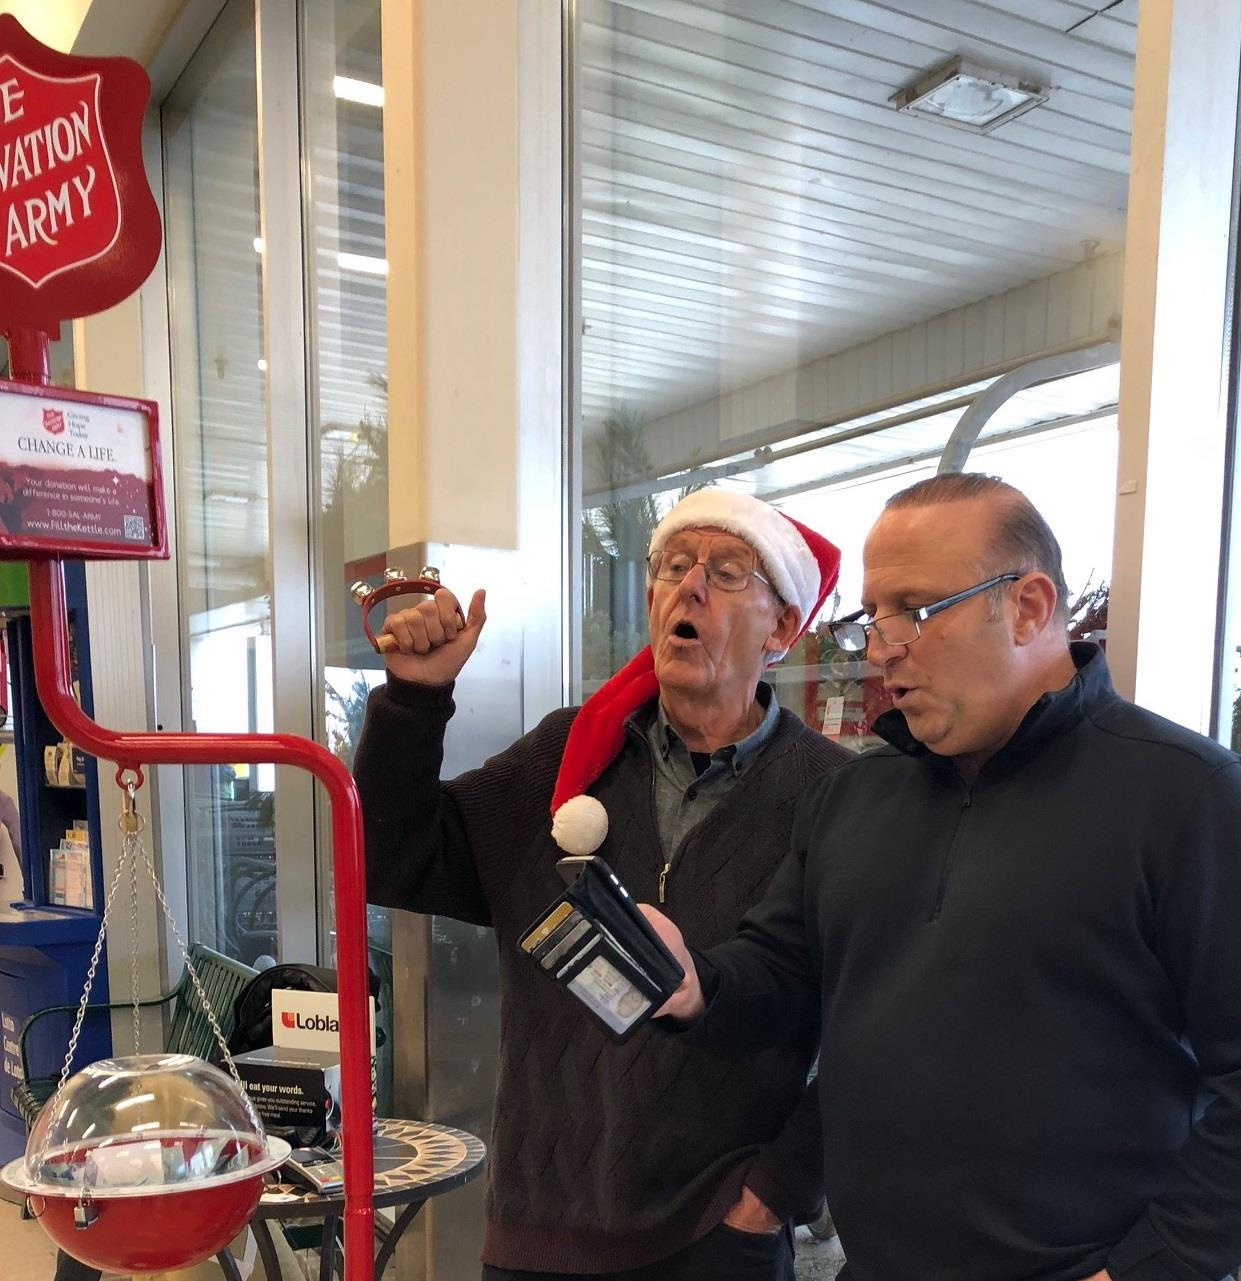 Rotary Club of Ottawa South members Alex Davidson and Luigi Maiorino belt out Christmas carols while collecting funds for the Salvation Army Christmas Kettle.